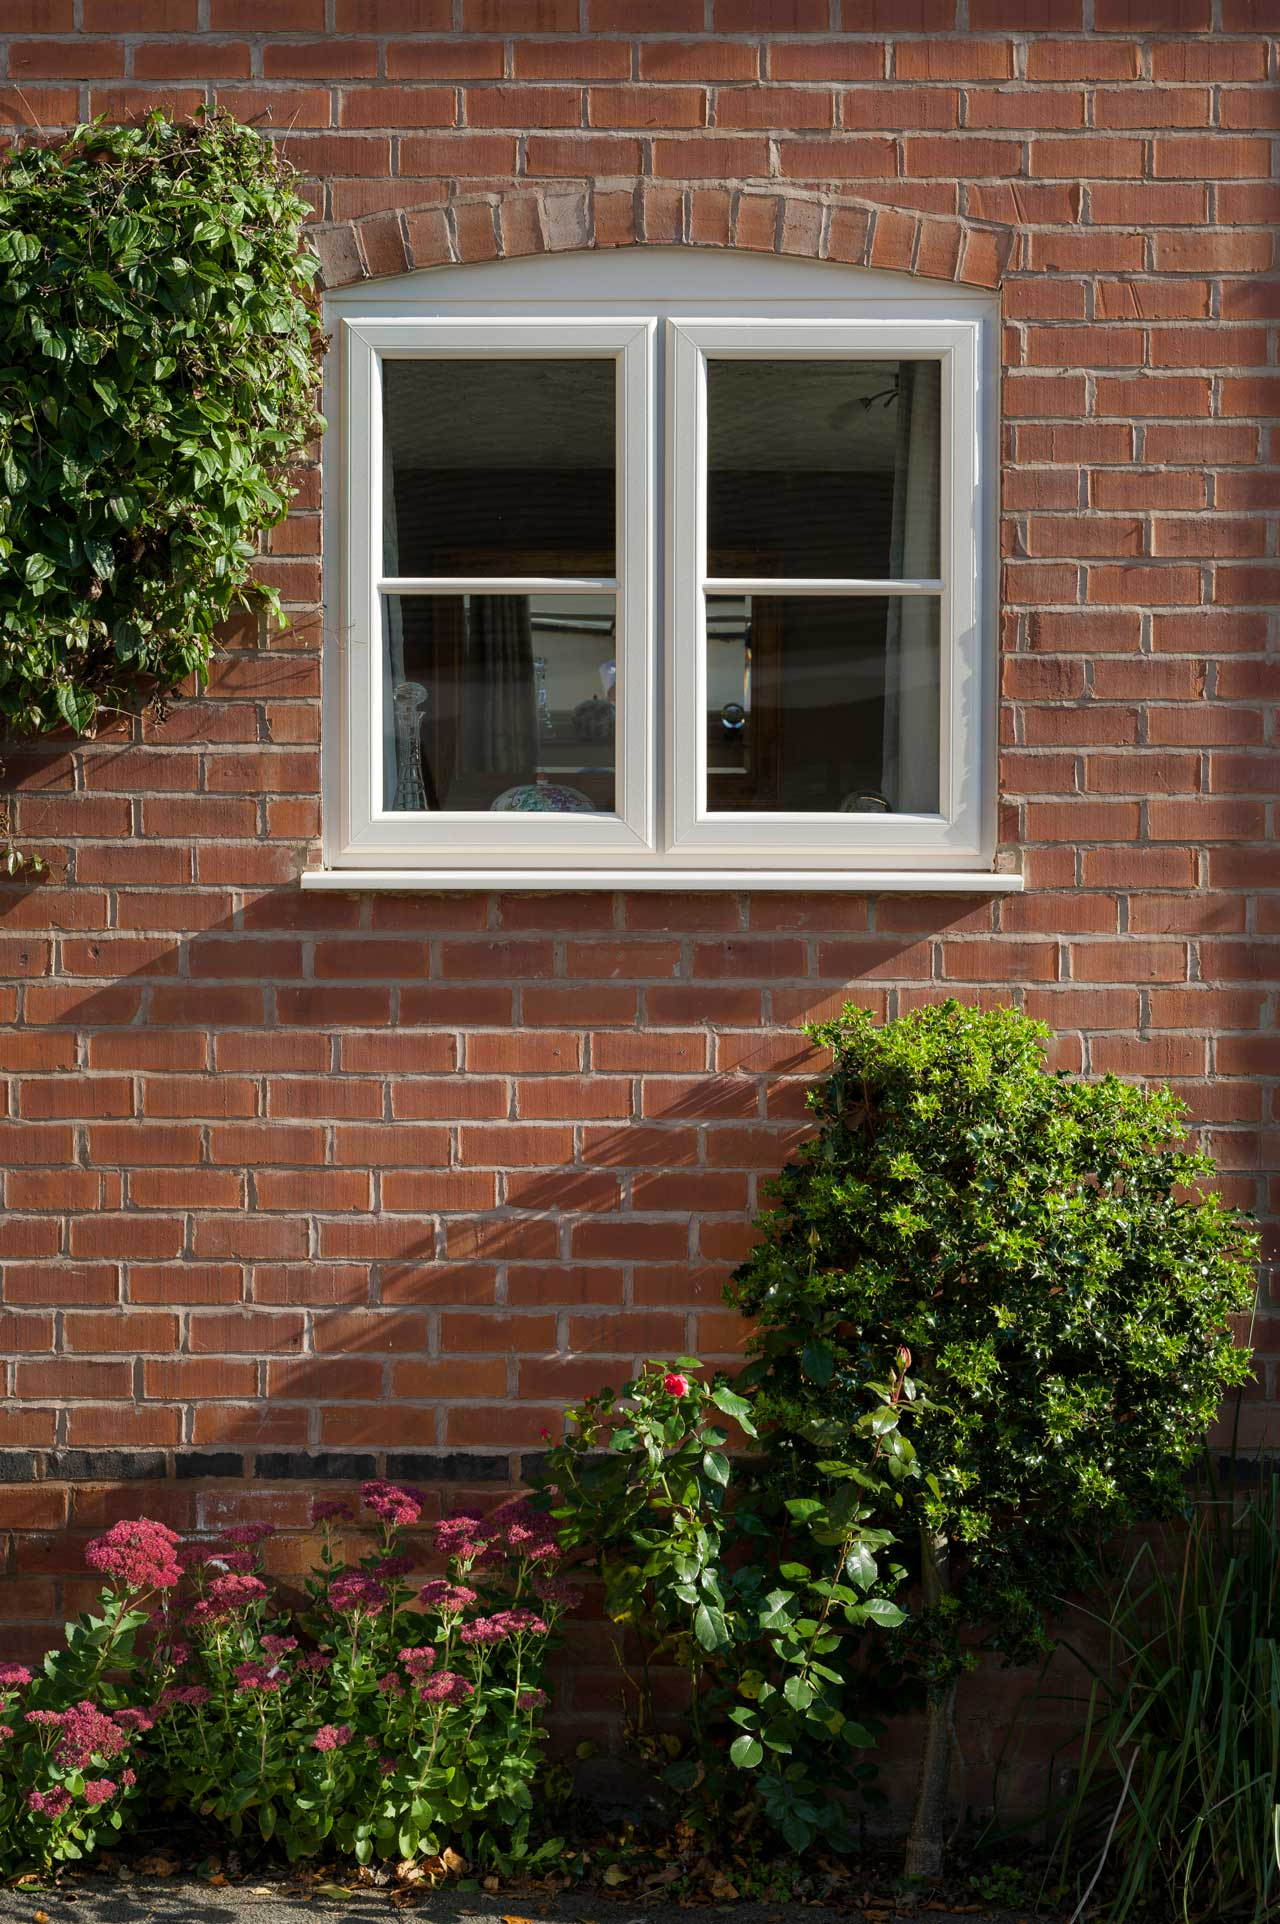 Rochford french casement windows fitted